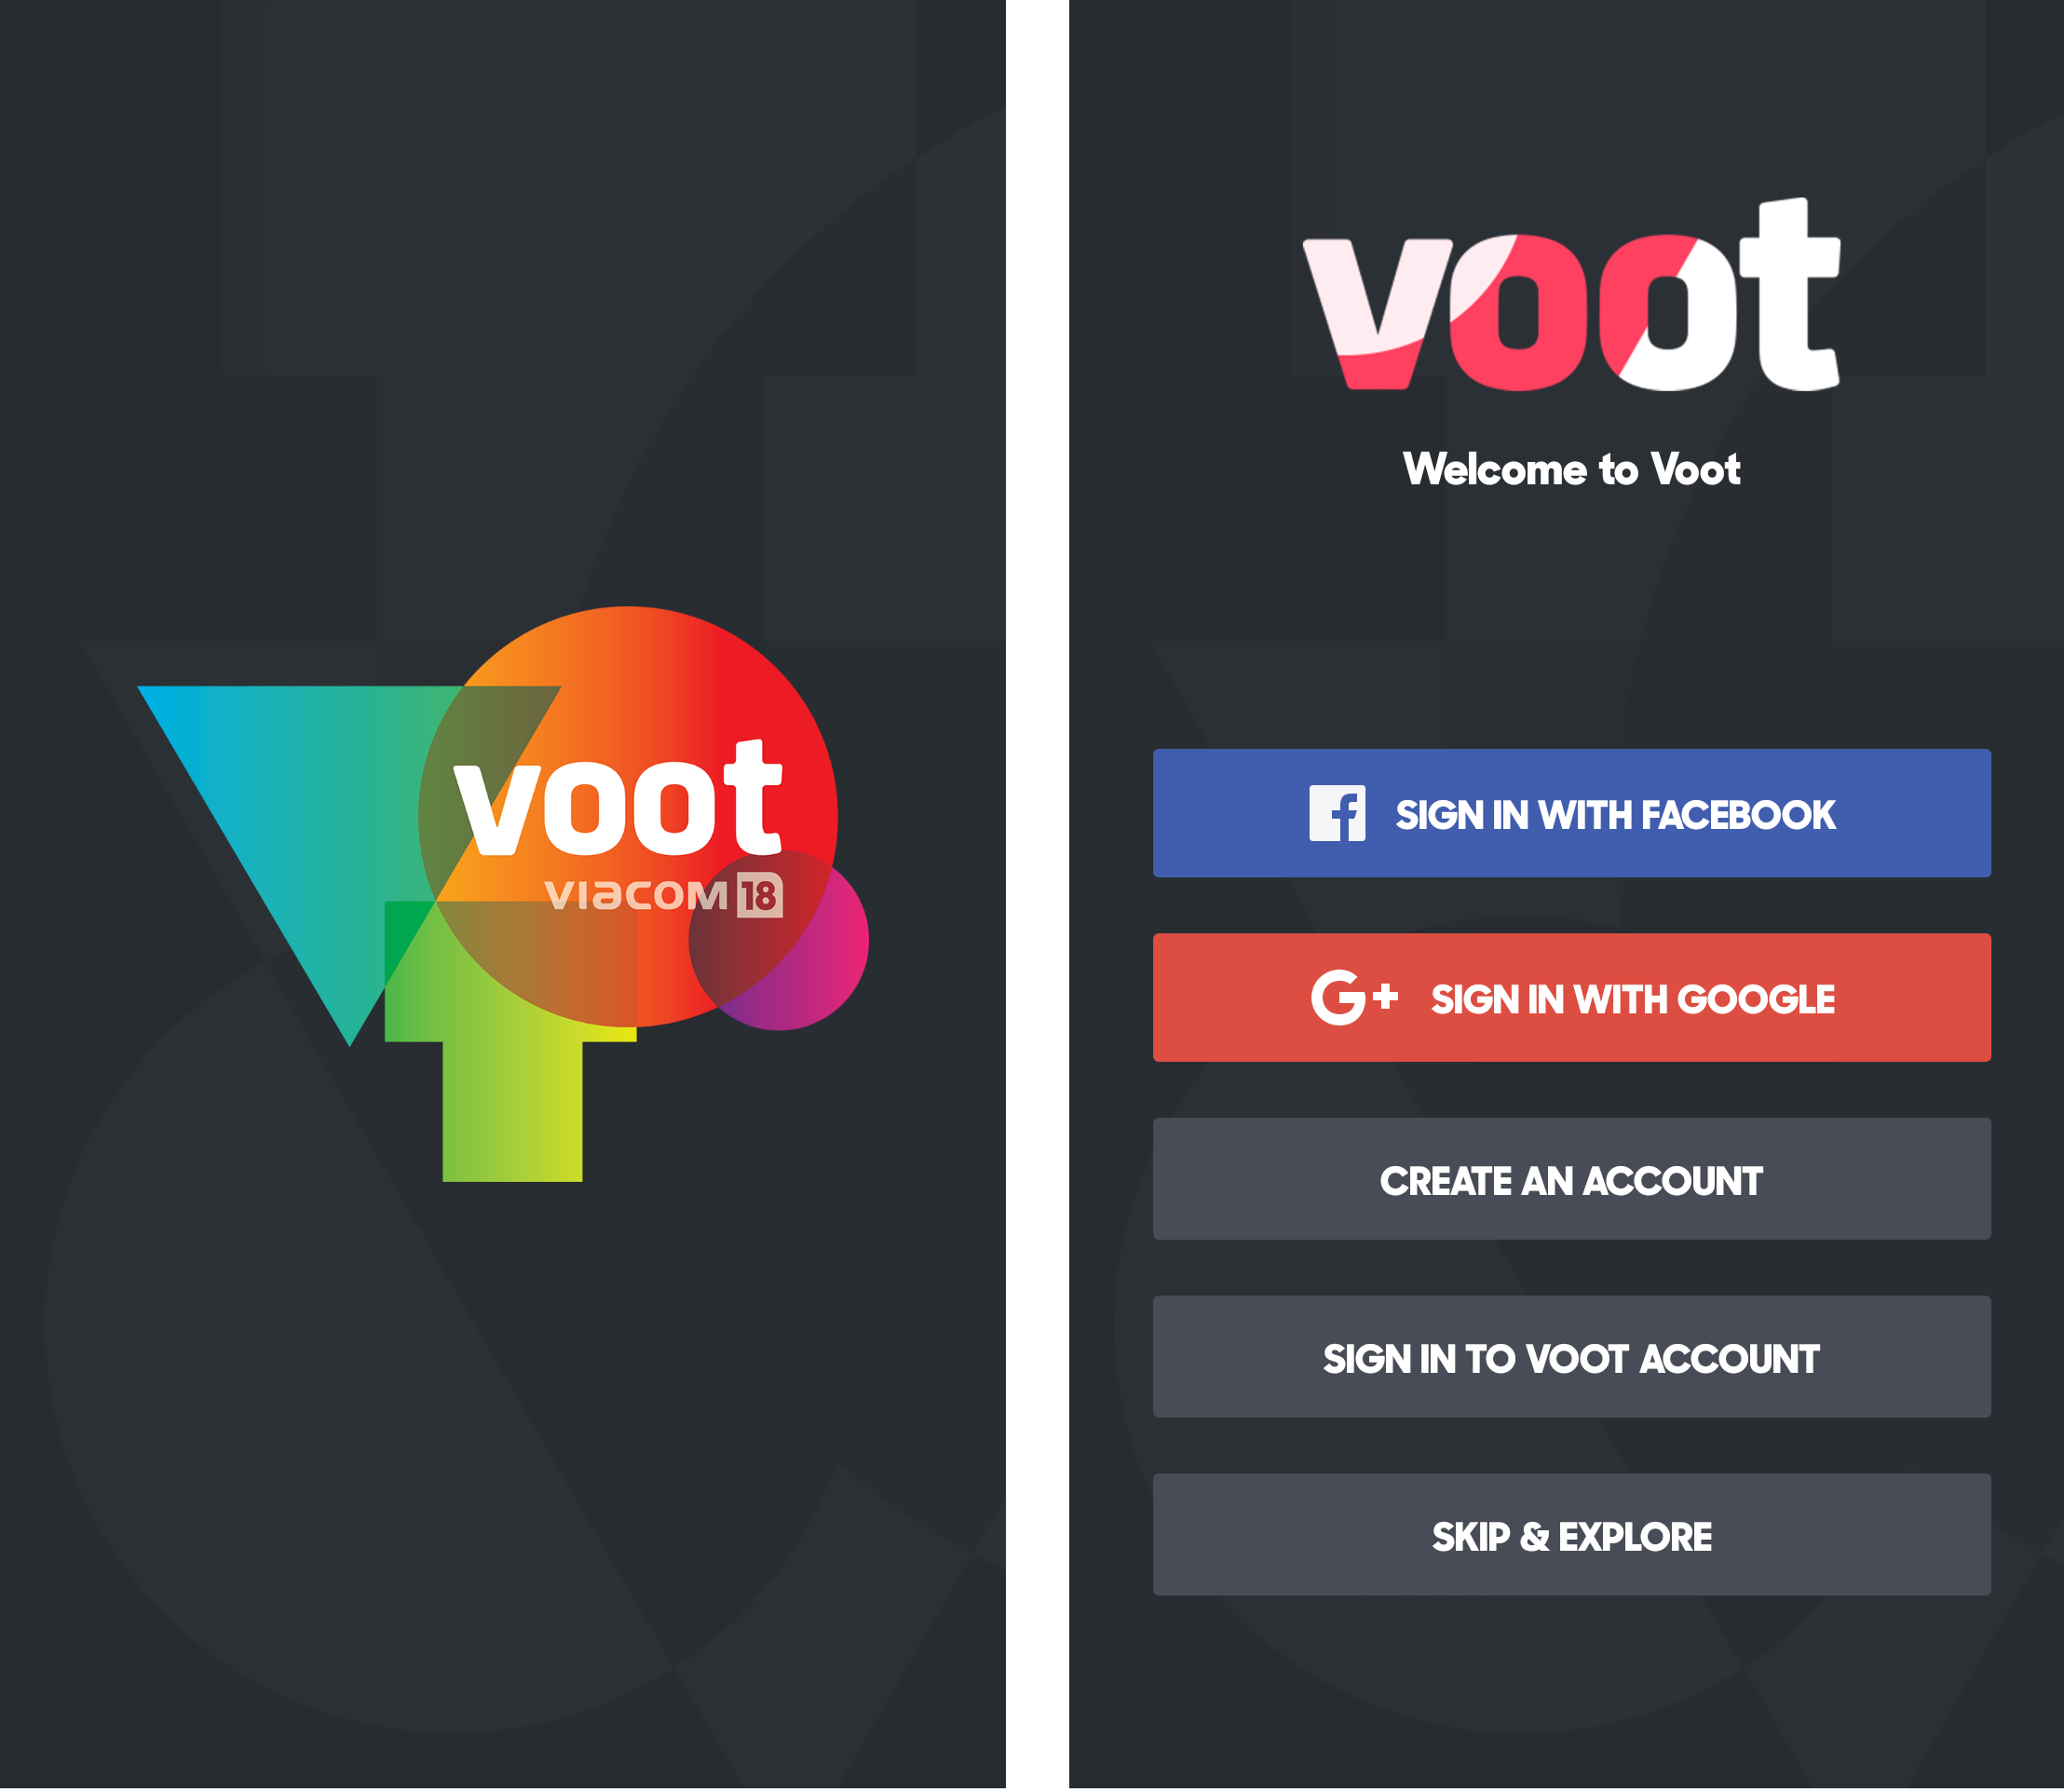 voot means in hindi